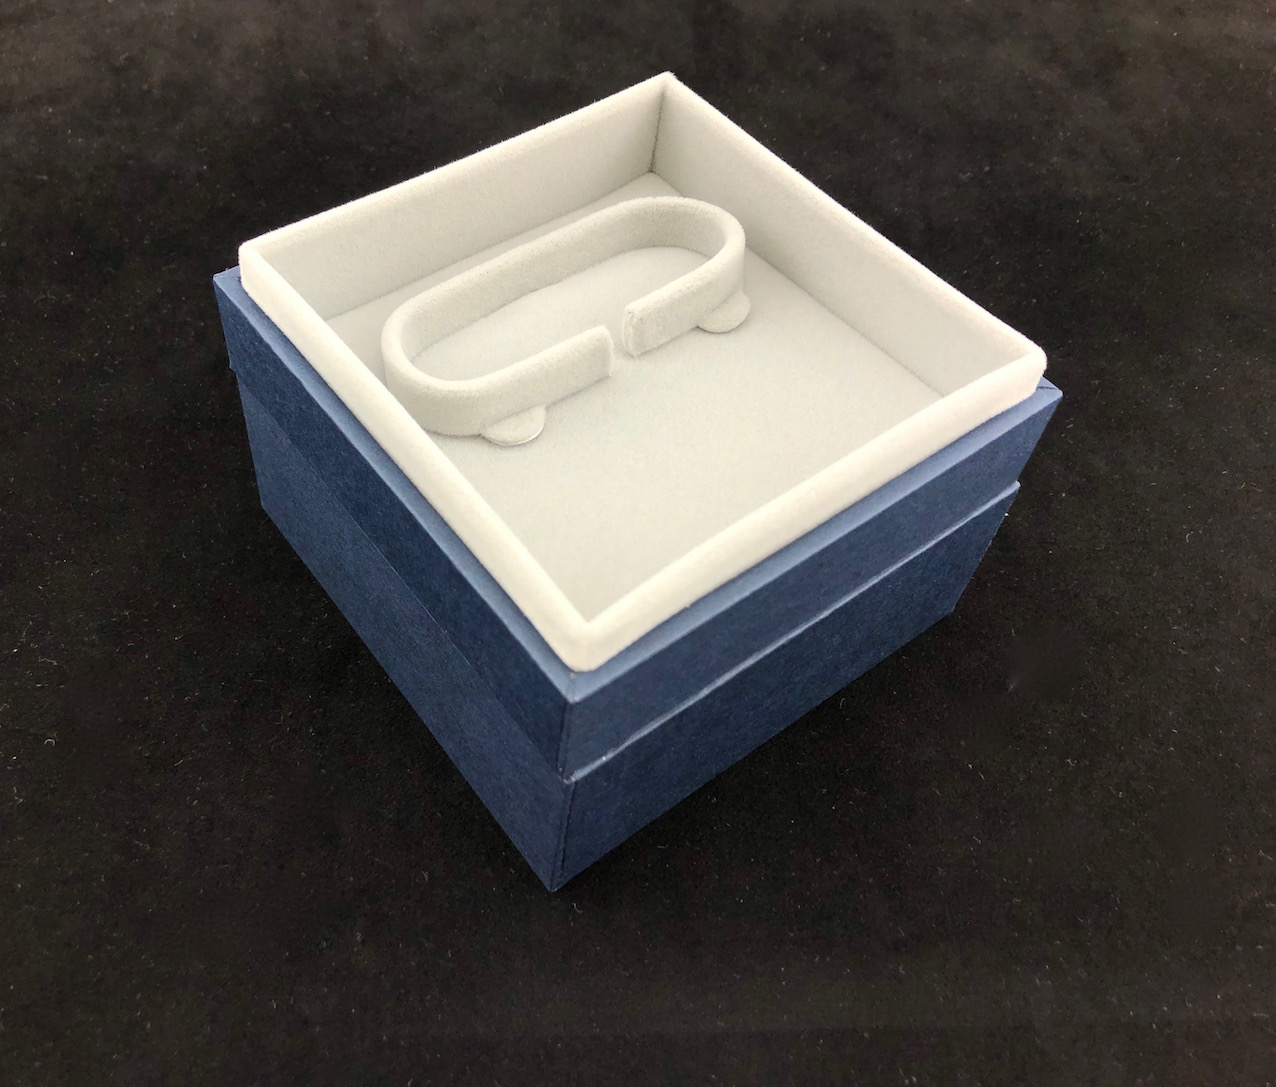 New Blue Envy Bangle Box